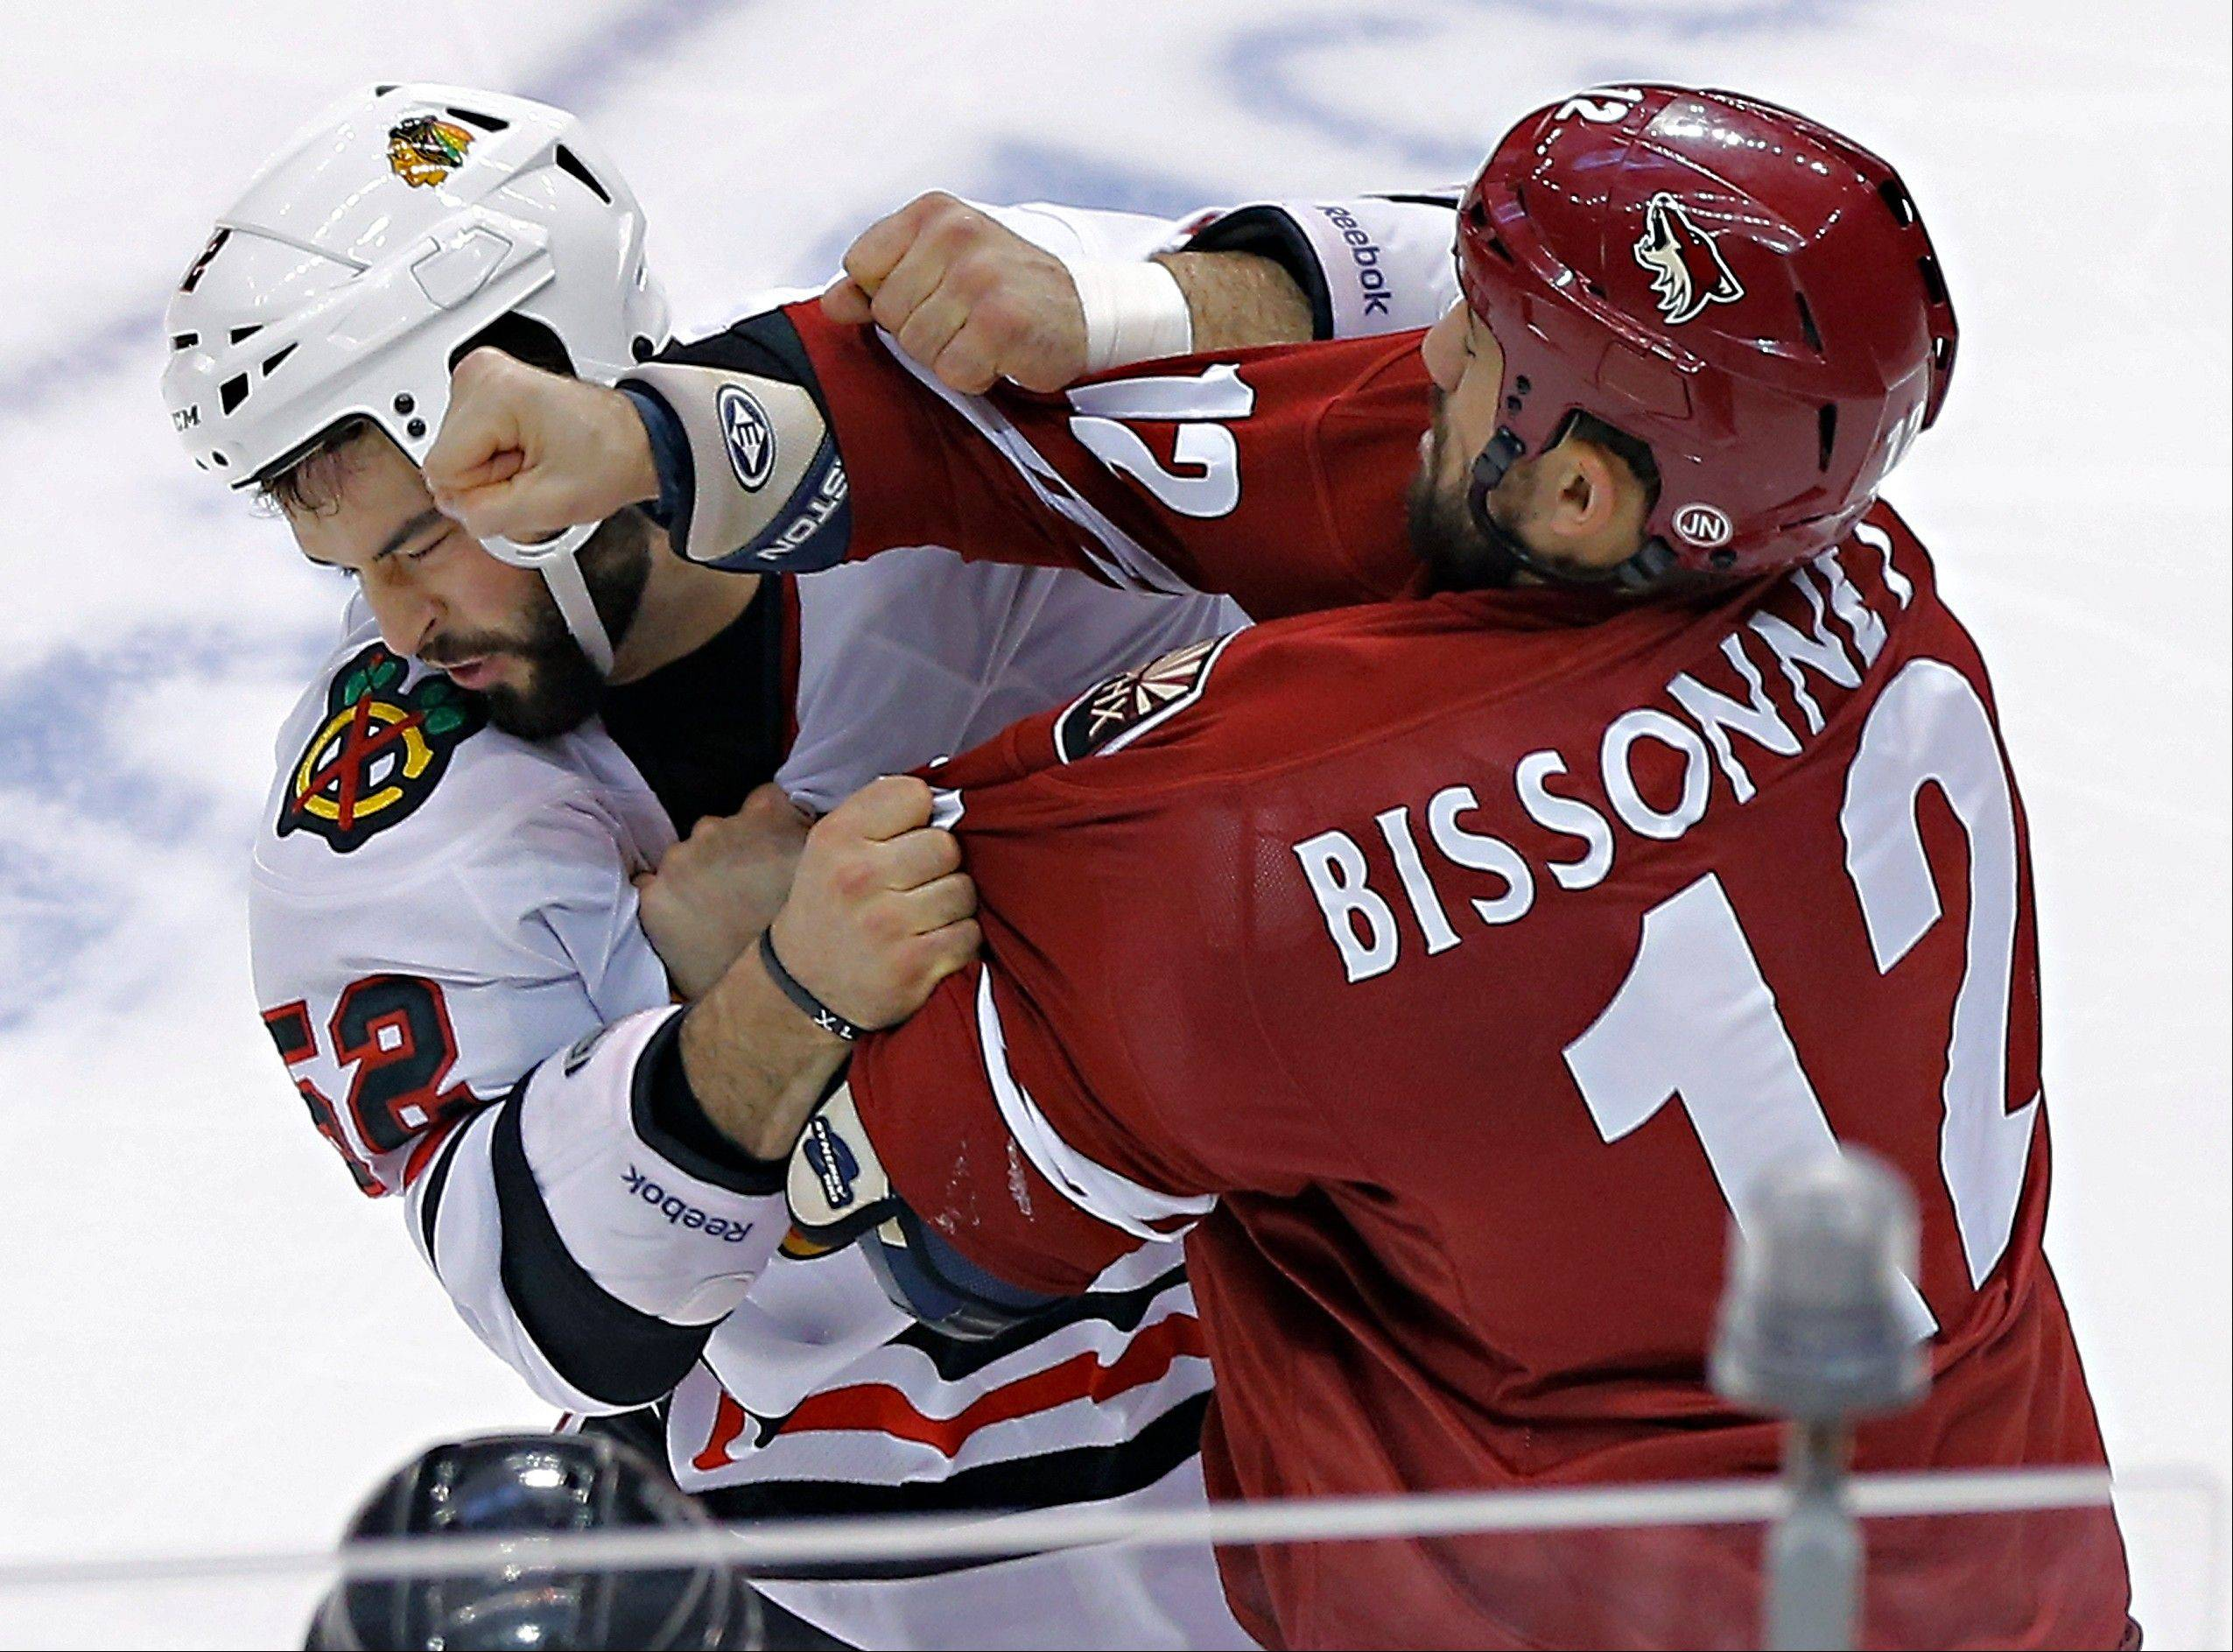 Phoenix Coyotes' Paul Bissonnette (12) and Chicago Blackhawks' Brandon Bollig (52) fight during the second period of an NHL hockey game Sunday in Glendale, Ariz. The Hawks would go on to win 6-4.